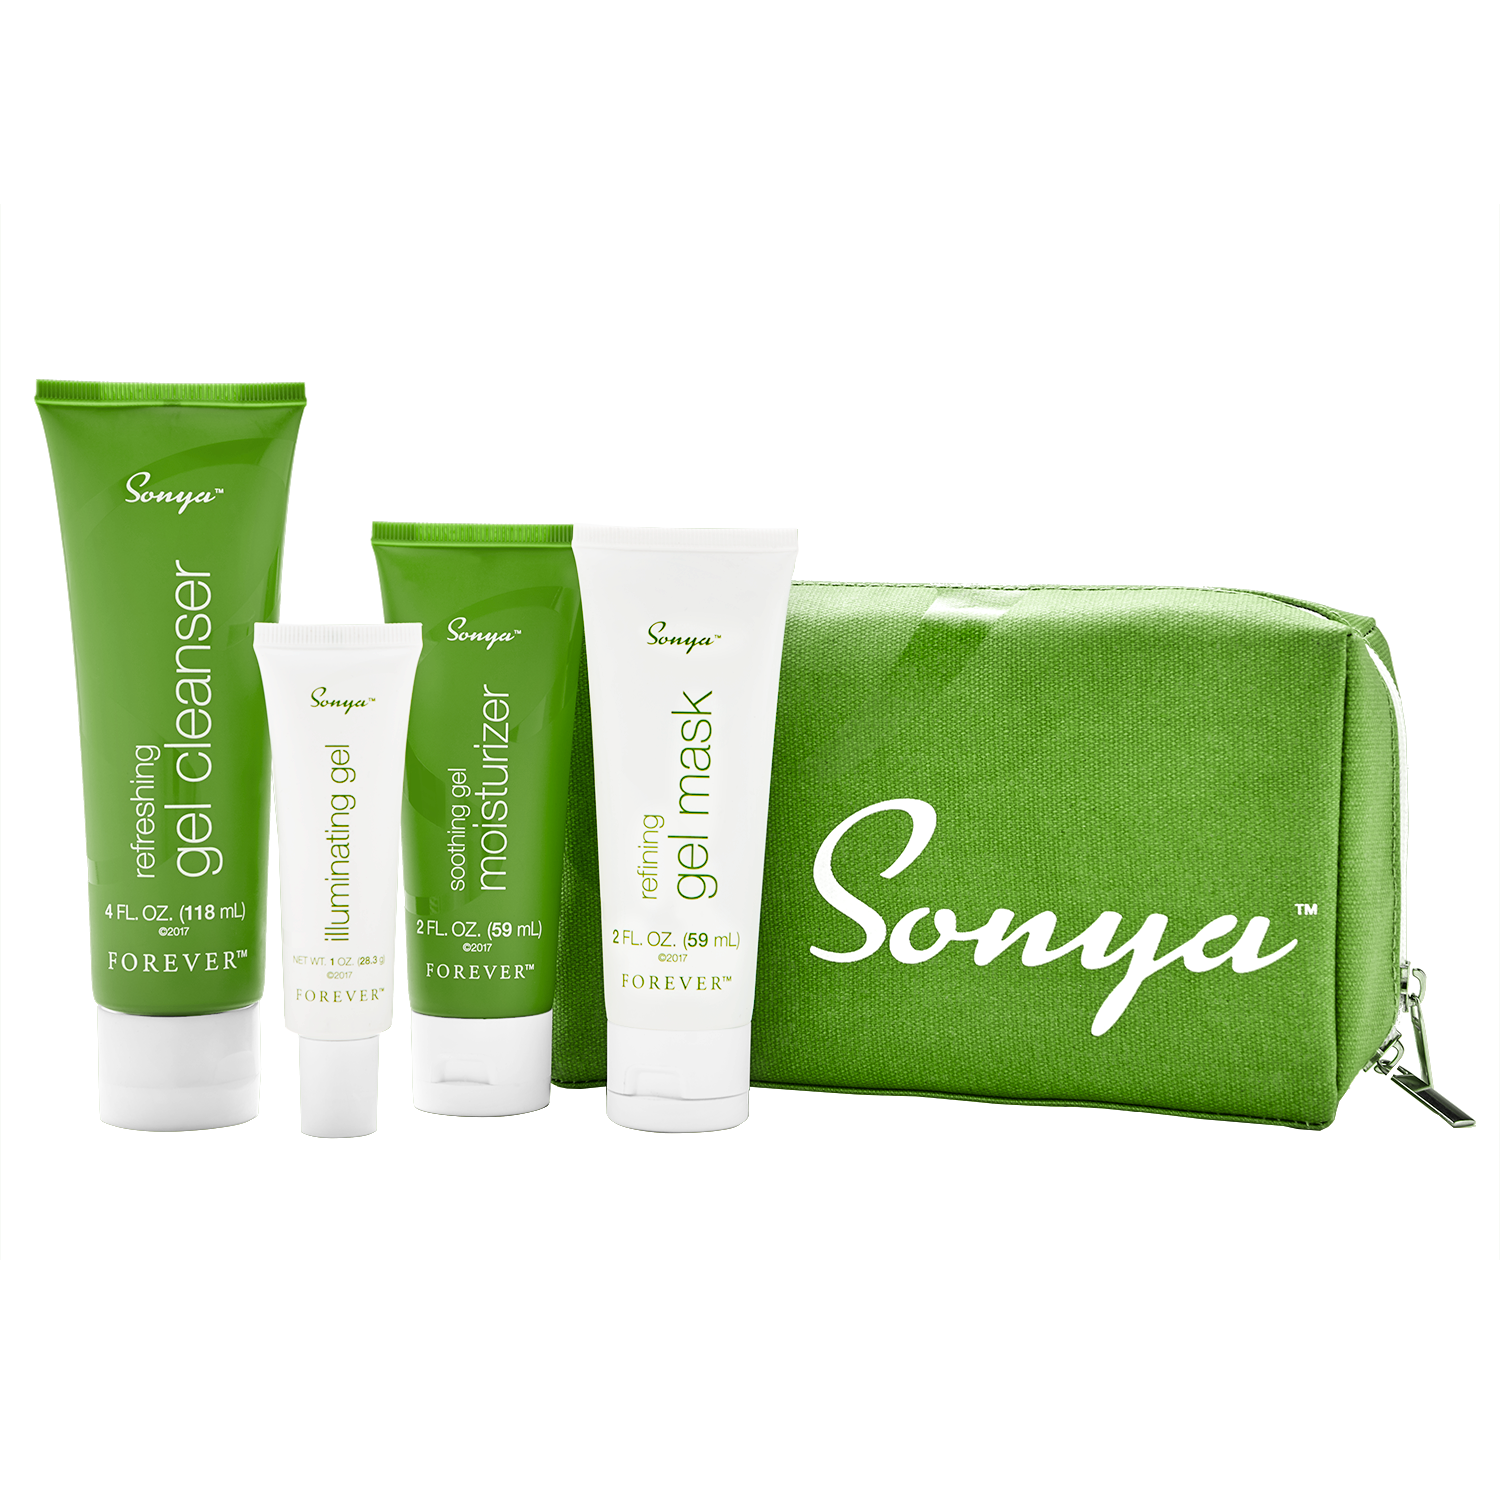 Sonya daily skincare is gel-based face care with refreshing gel cleanser, illuminating gel, refining gel mask and soothing gel moisturizer.